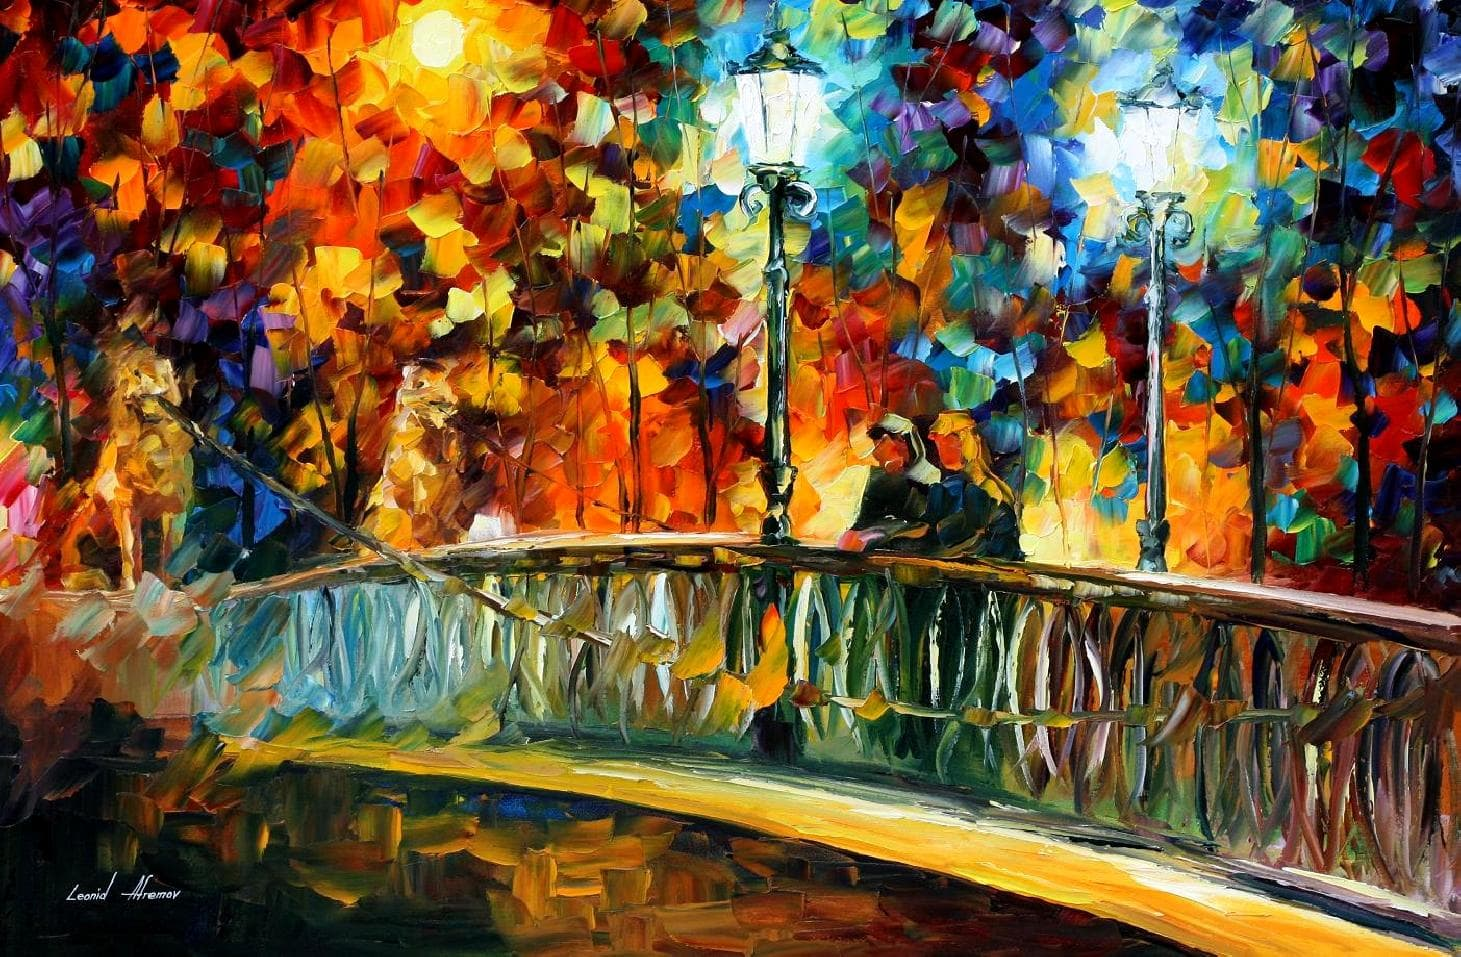 Leonid afremov oil on canvas palette knife buy original for Oil paint colors names